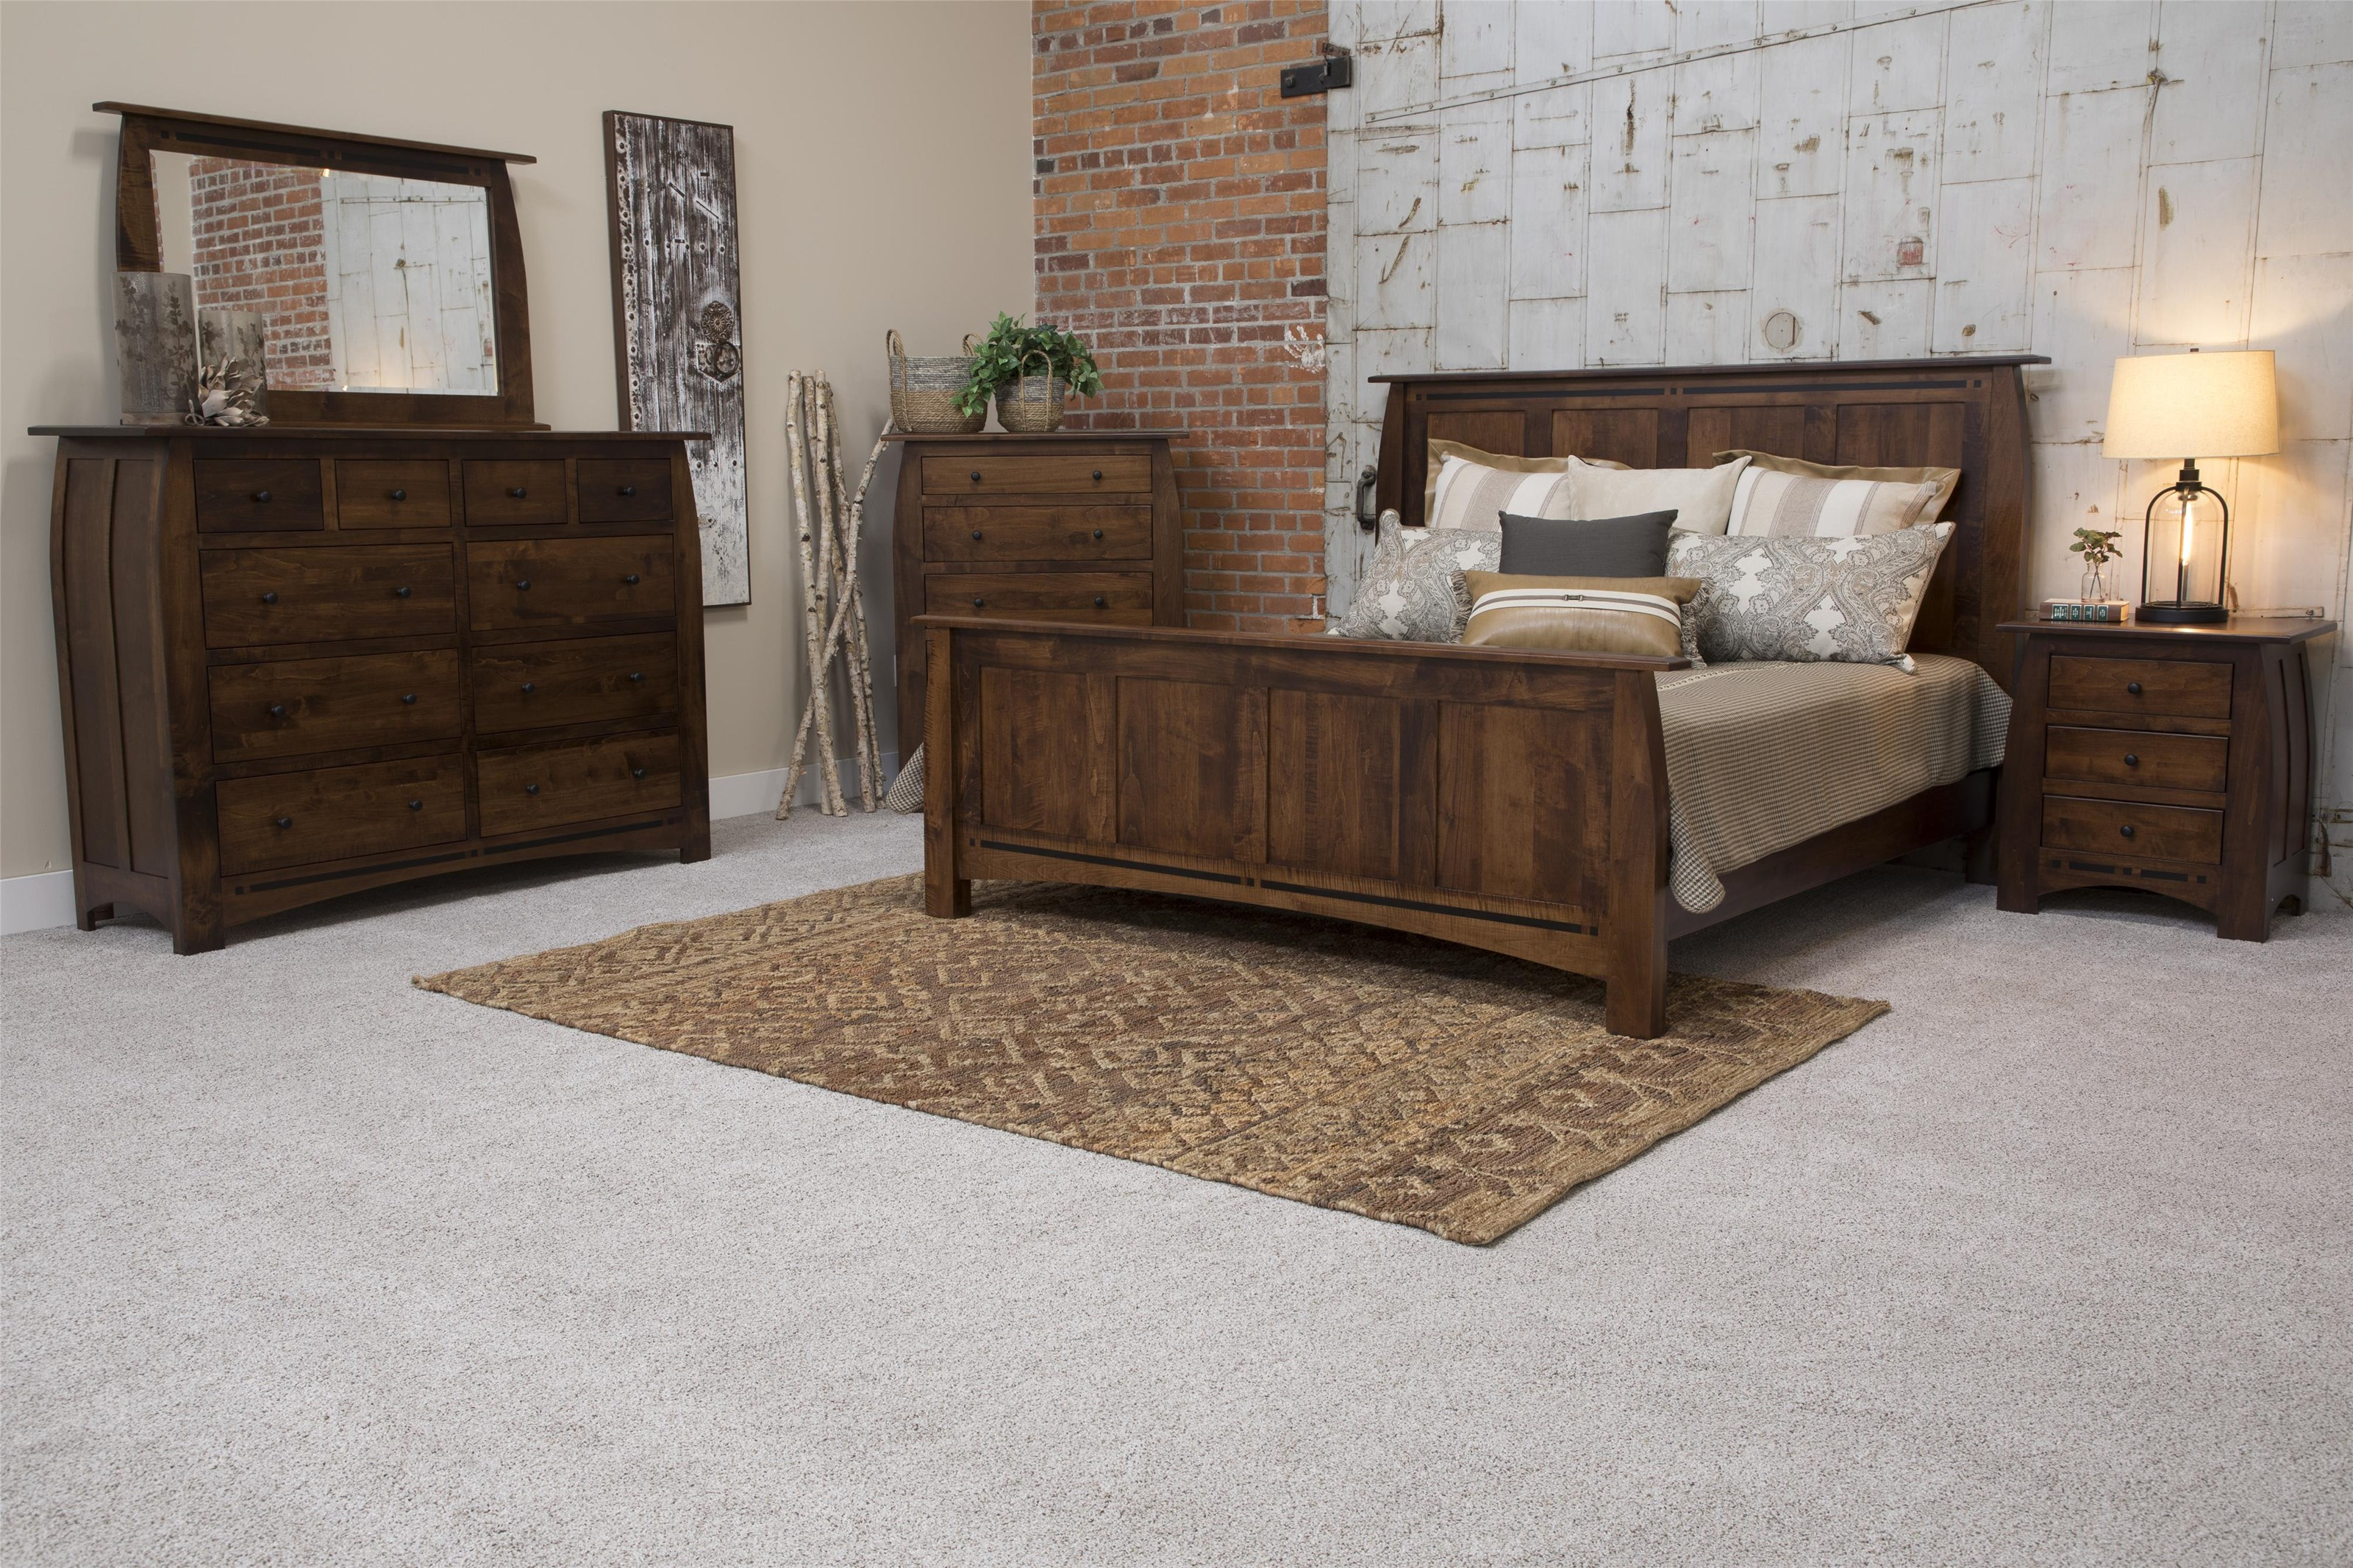 Clark 4 Piece Clark Amish King Bedroom Group by Indiana Amish at Walker's Furniture